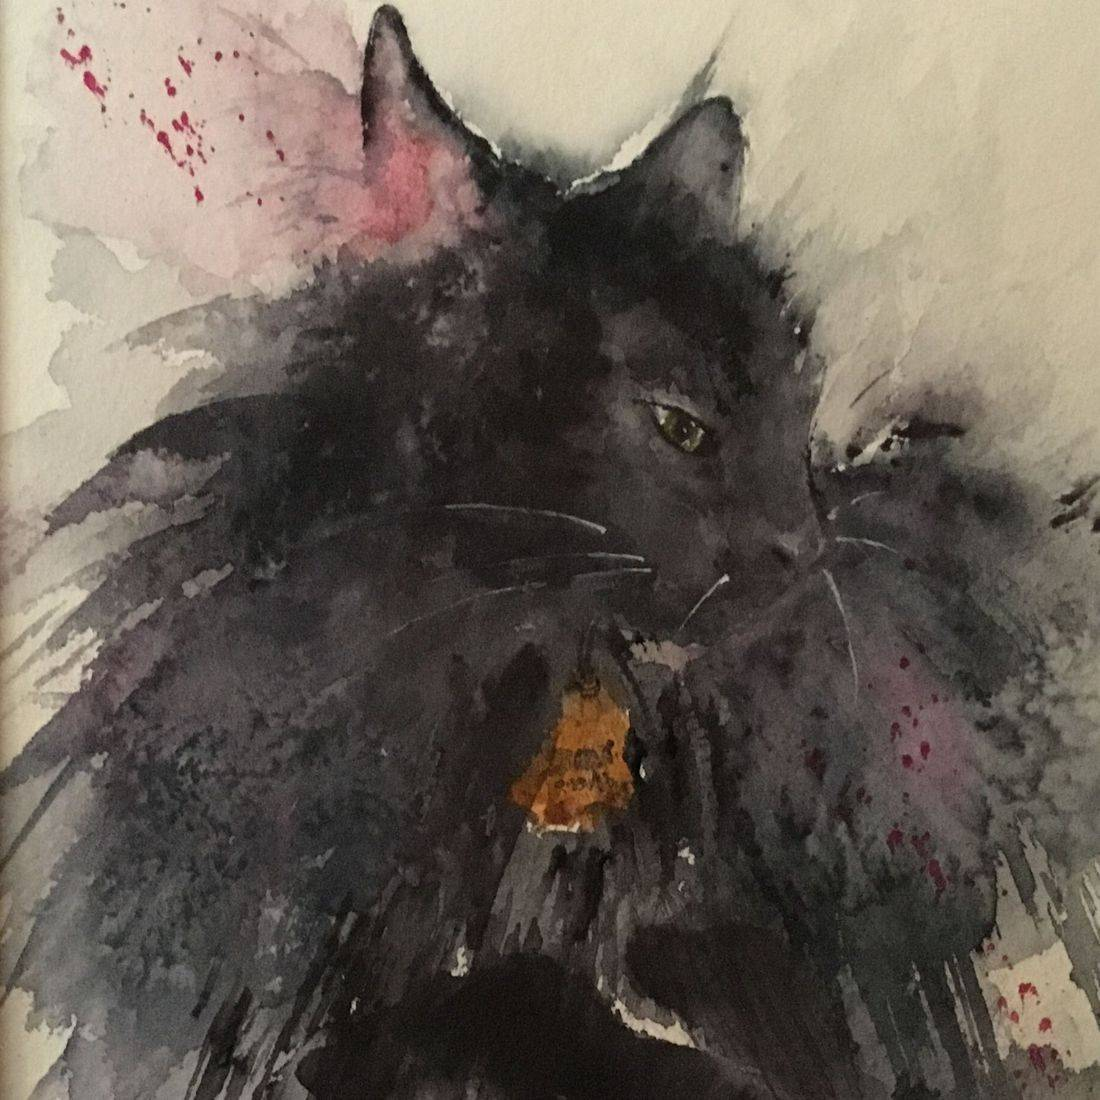 Rebecca Krutsinger/RPutbrese Watercolor/Becky Krutsinger pet portrait watercolor painting.